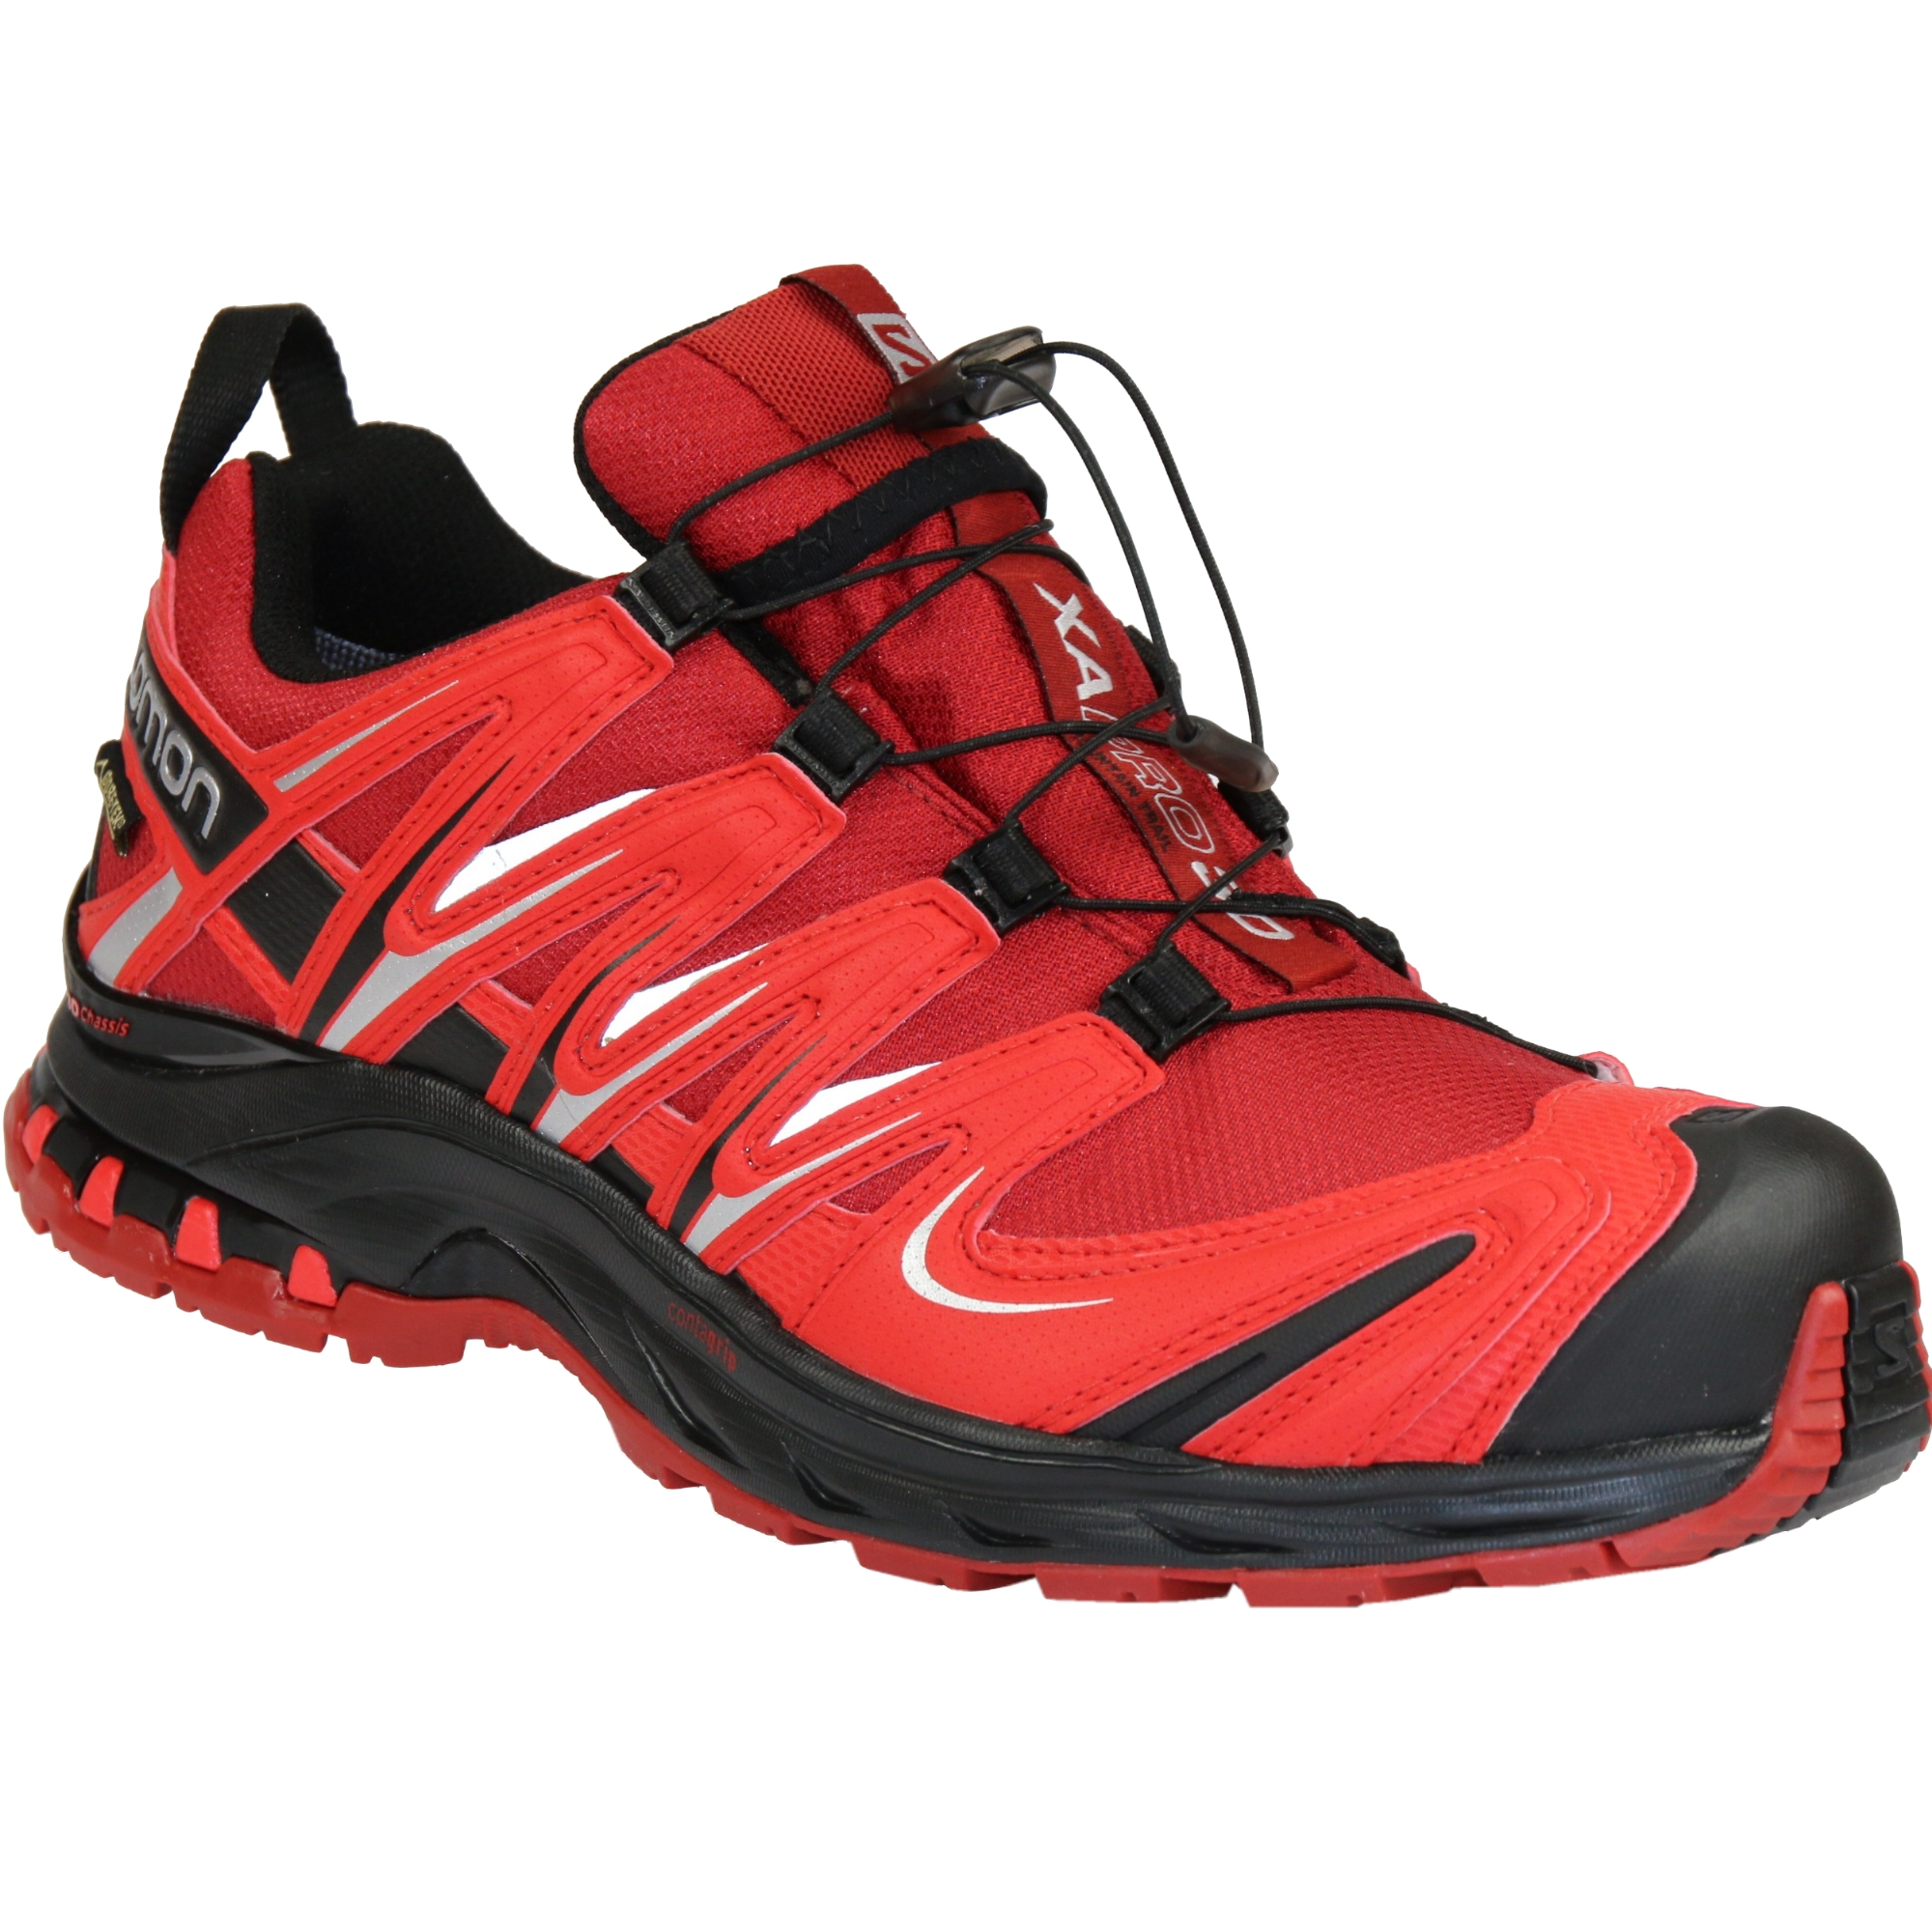 E Trail Running Shoes